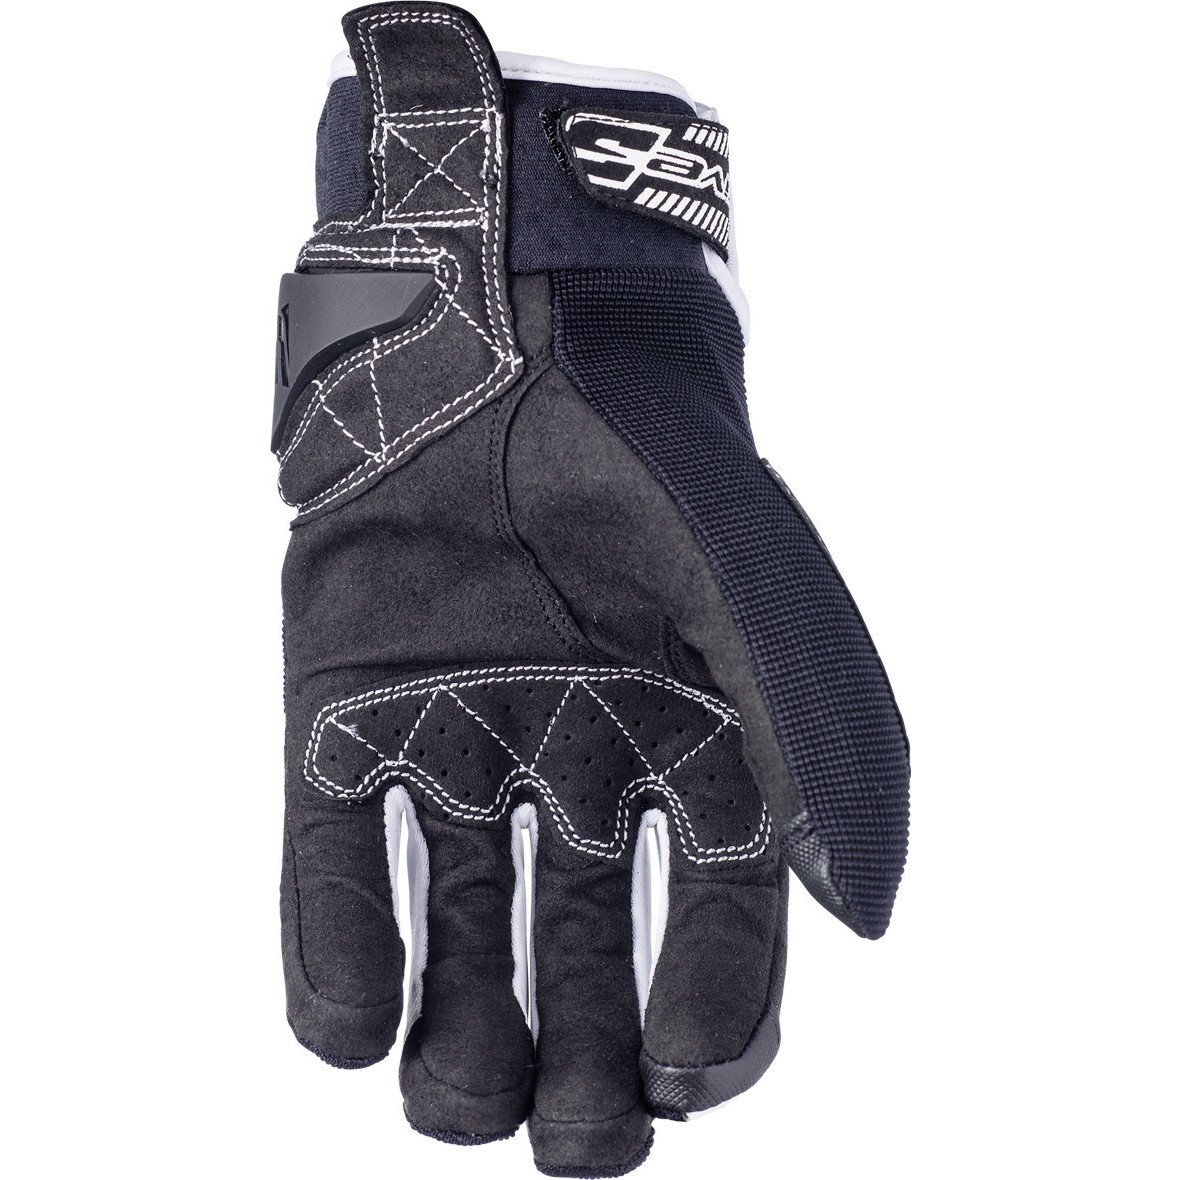 Five-RS3-Motorcycle-Gloves-Motorbike-Bike-Armour-Urban-Touch-Screen-GhostBikes thumbnail 12